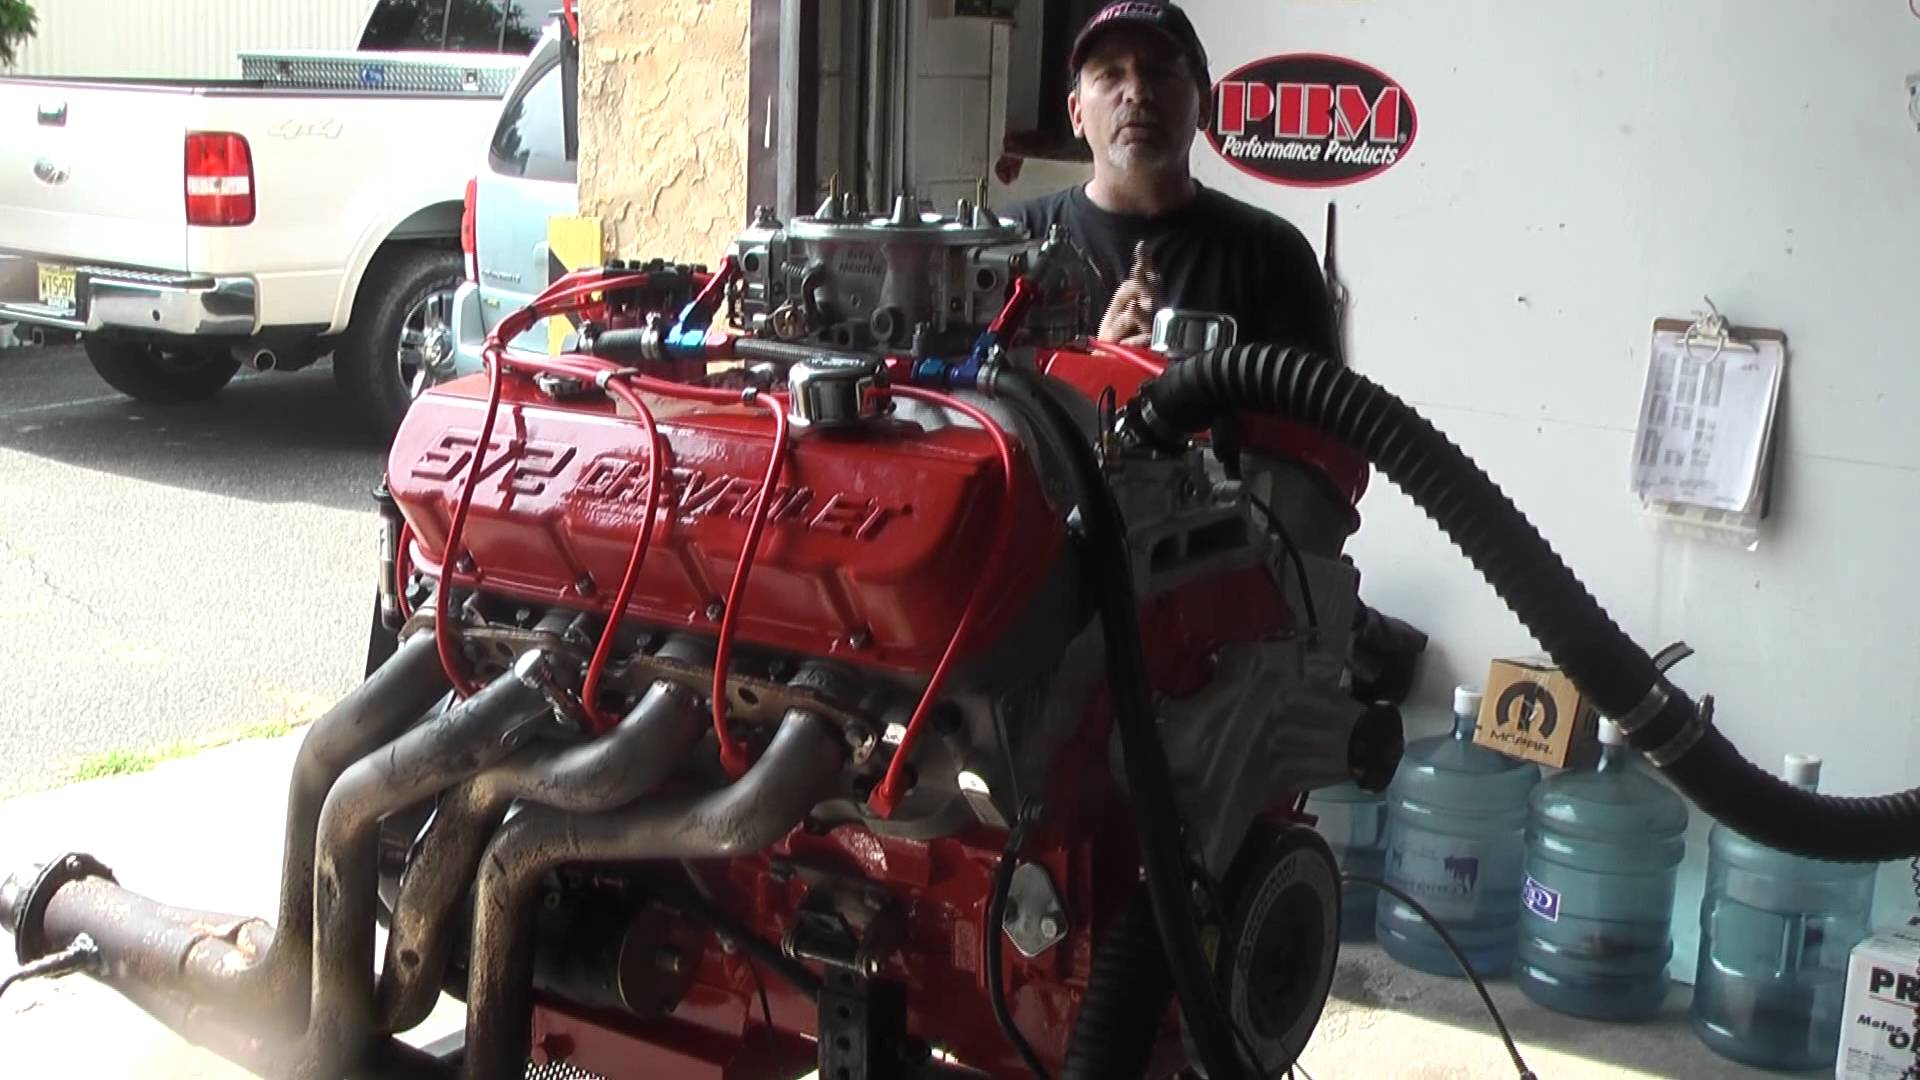 572 Cu In Streetable Big Block With 750HP